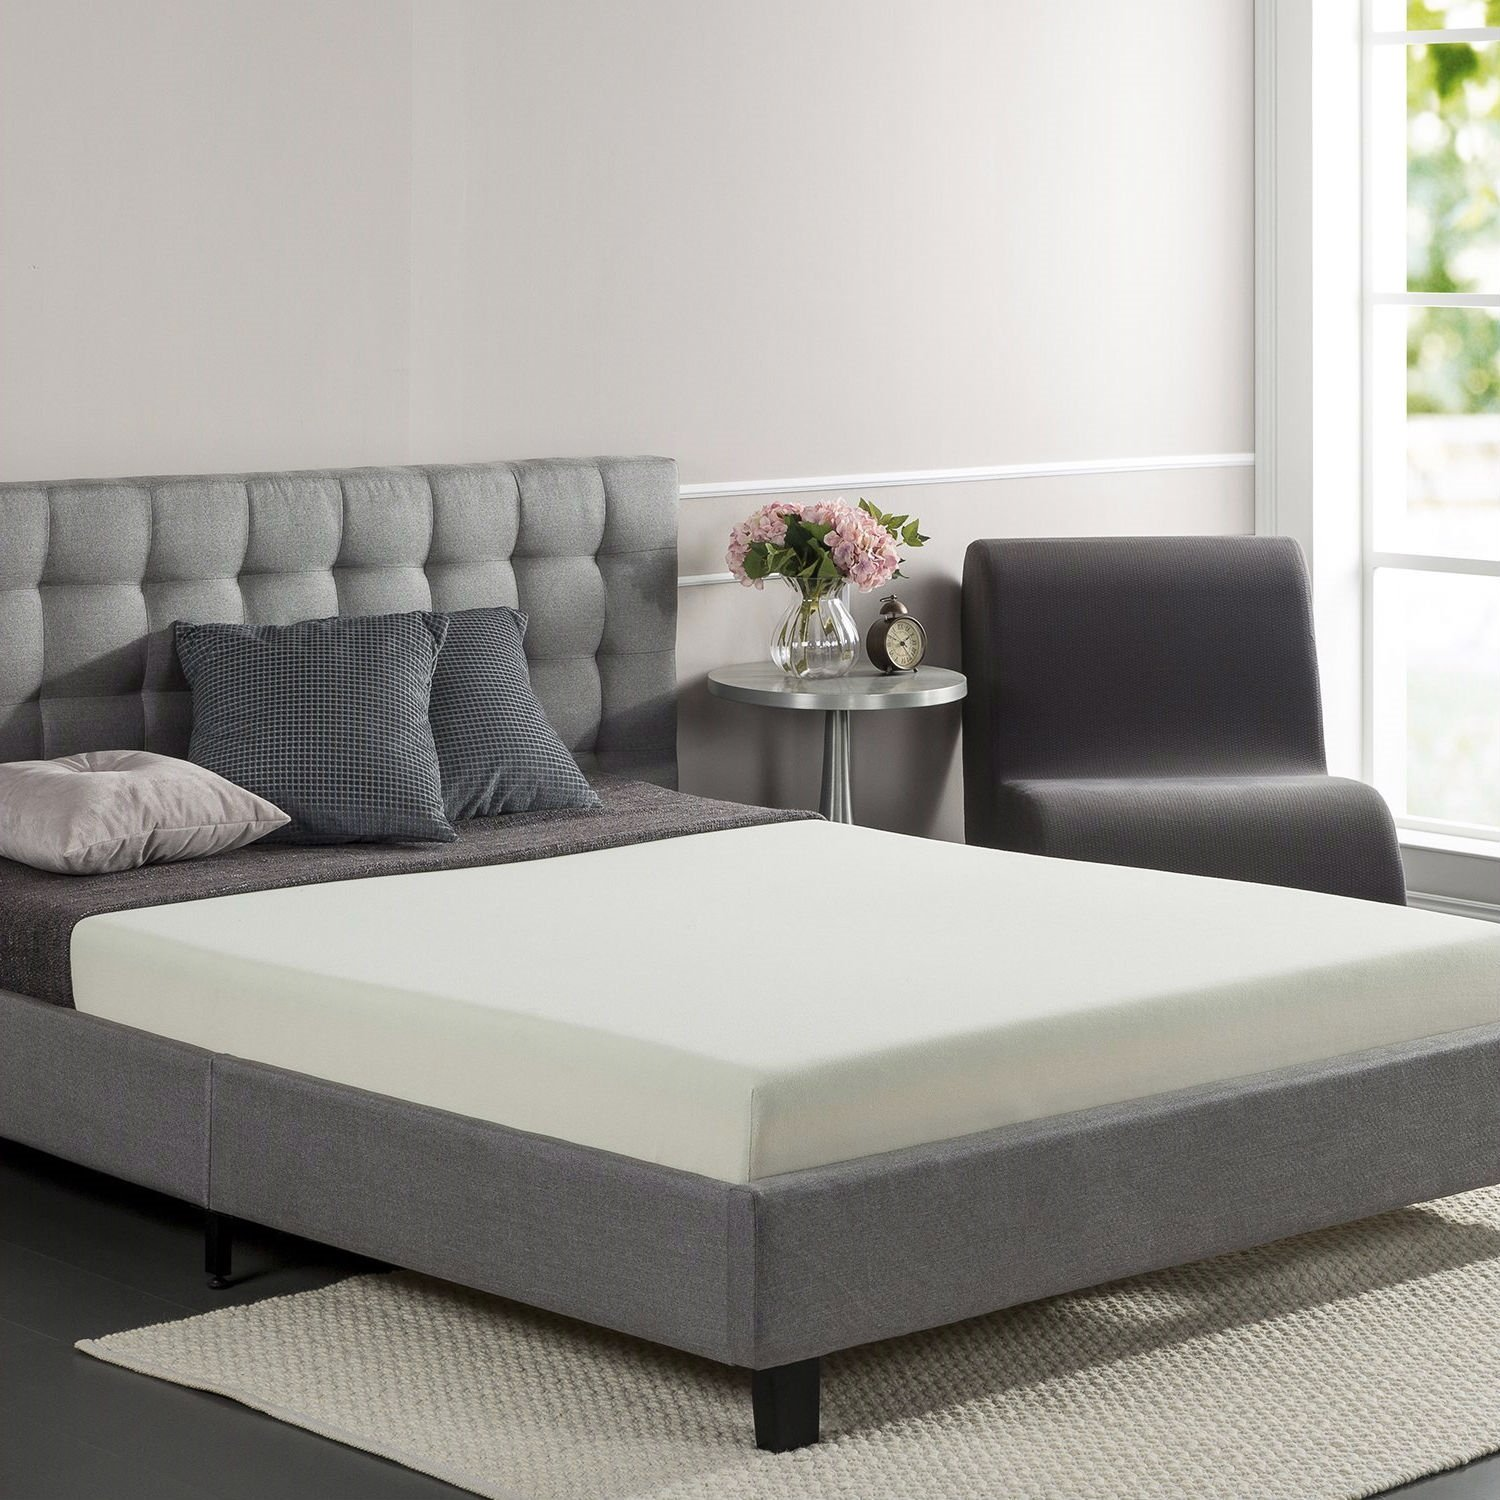 Full size 6inch Thick Memory Foam Mattress Medium Firm